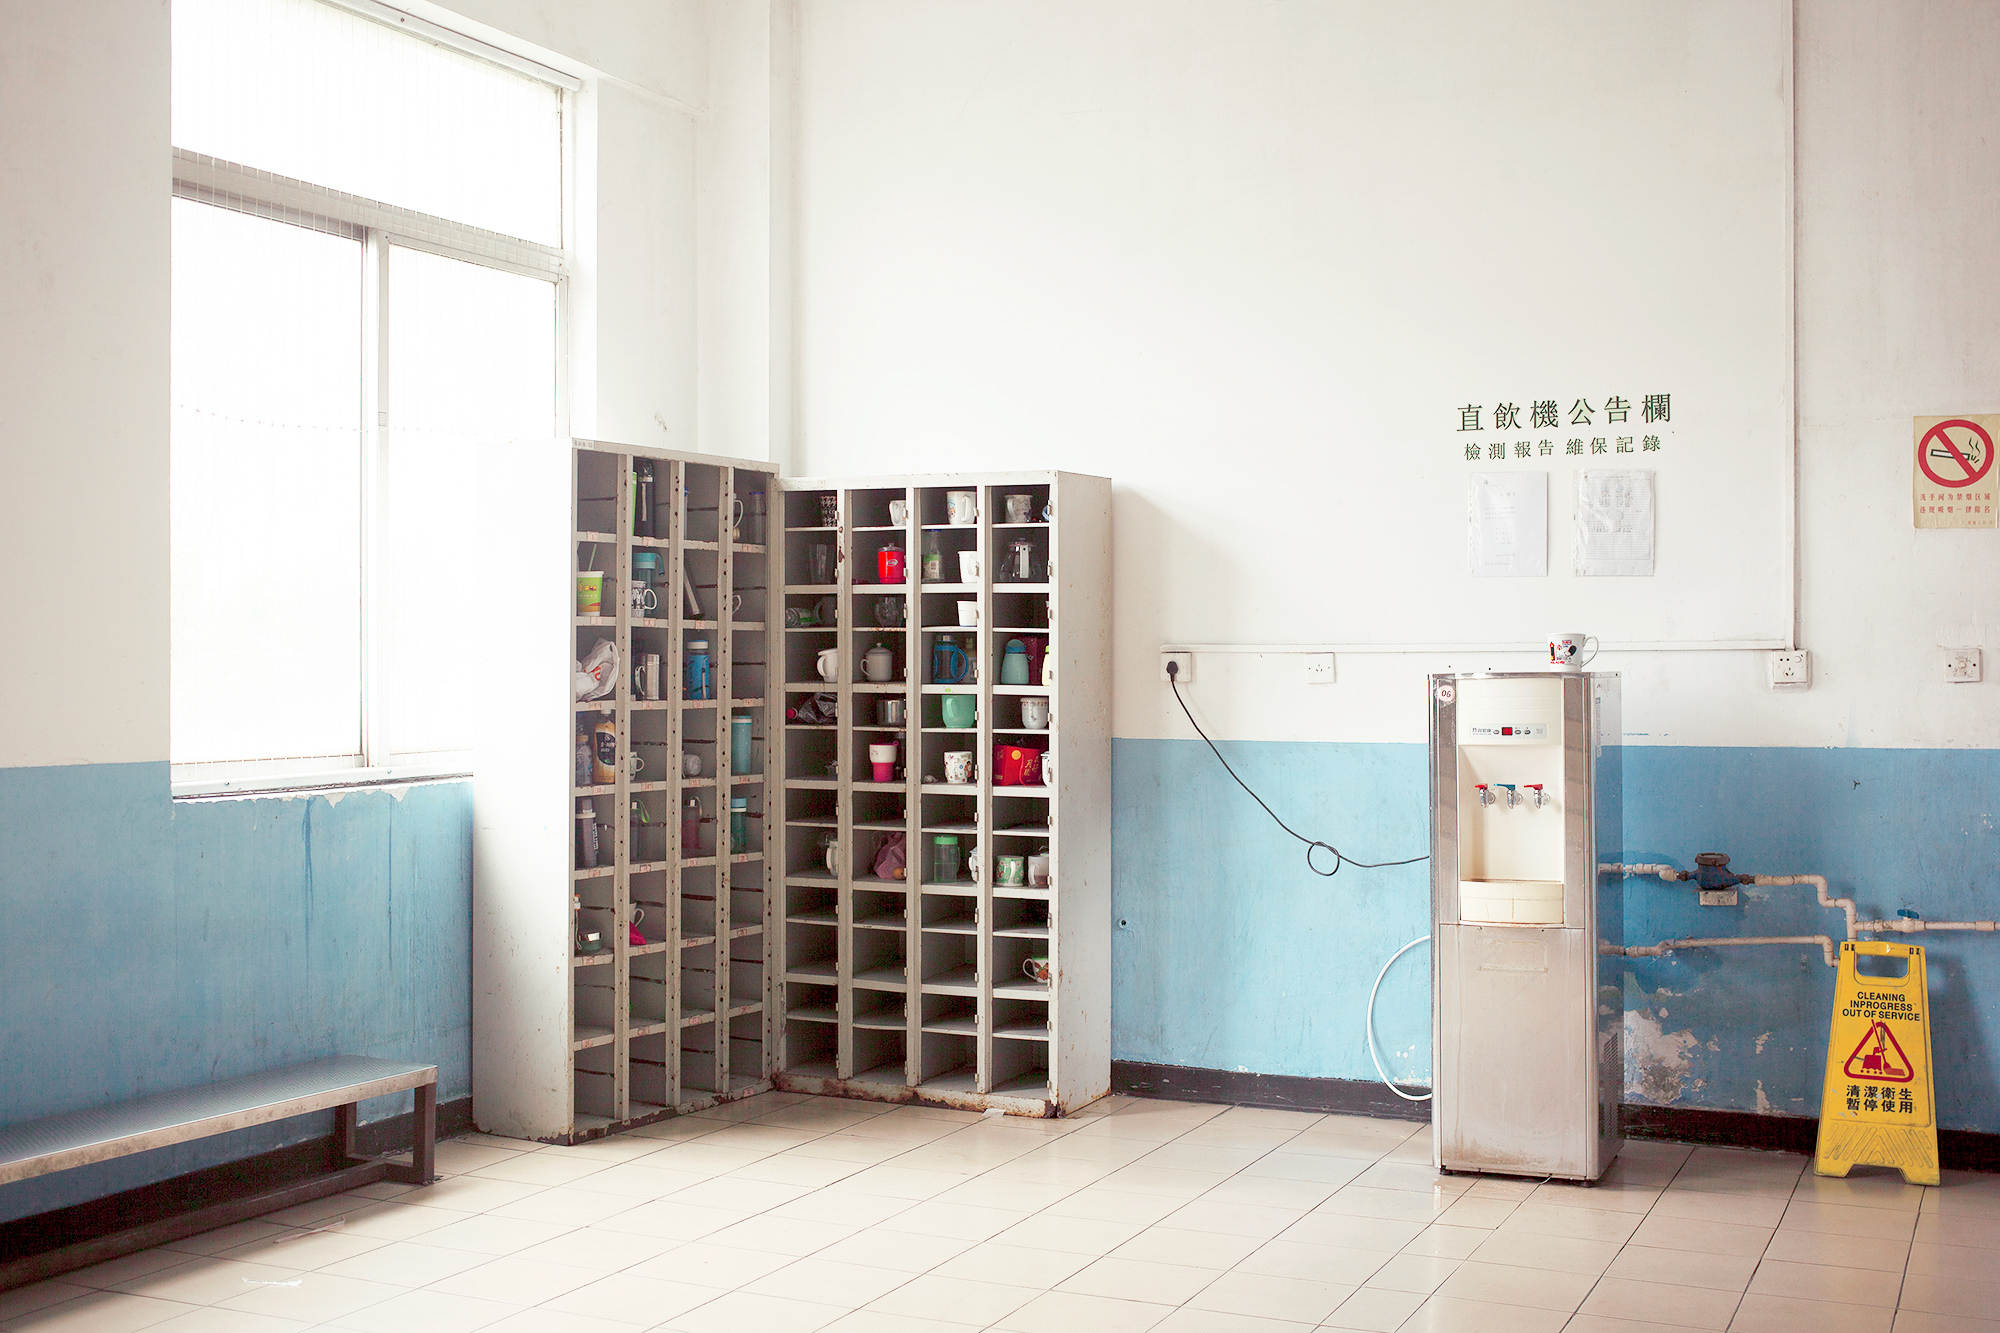 Cubbies for employees' personal items at Foxconn, Shenzhen, China, 2016.